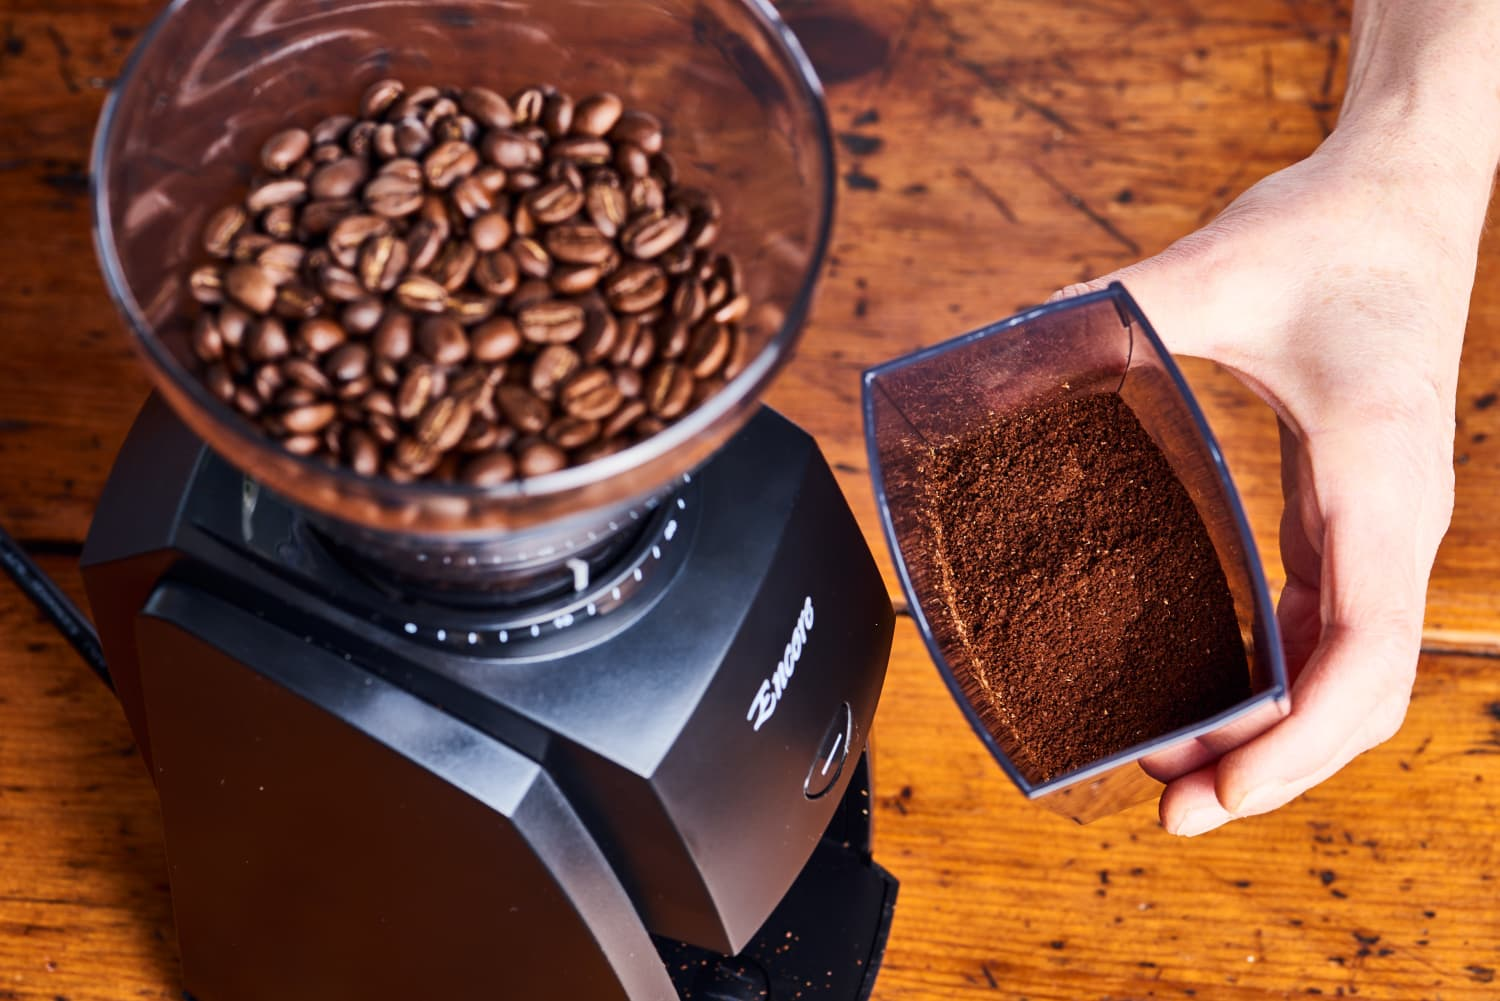 The Best Containers for Storing Your Coffee Beans, According to Coffee Professionals